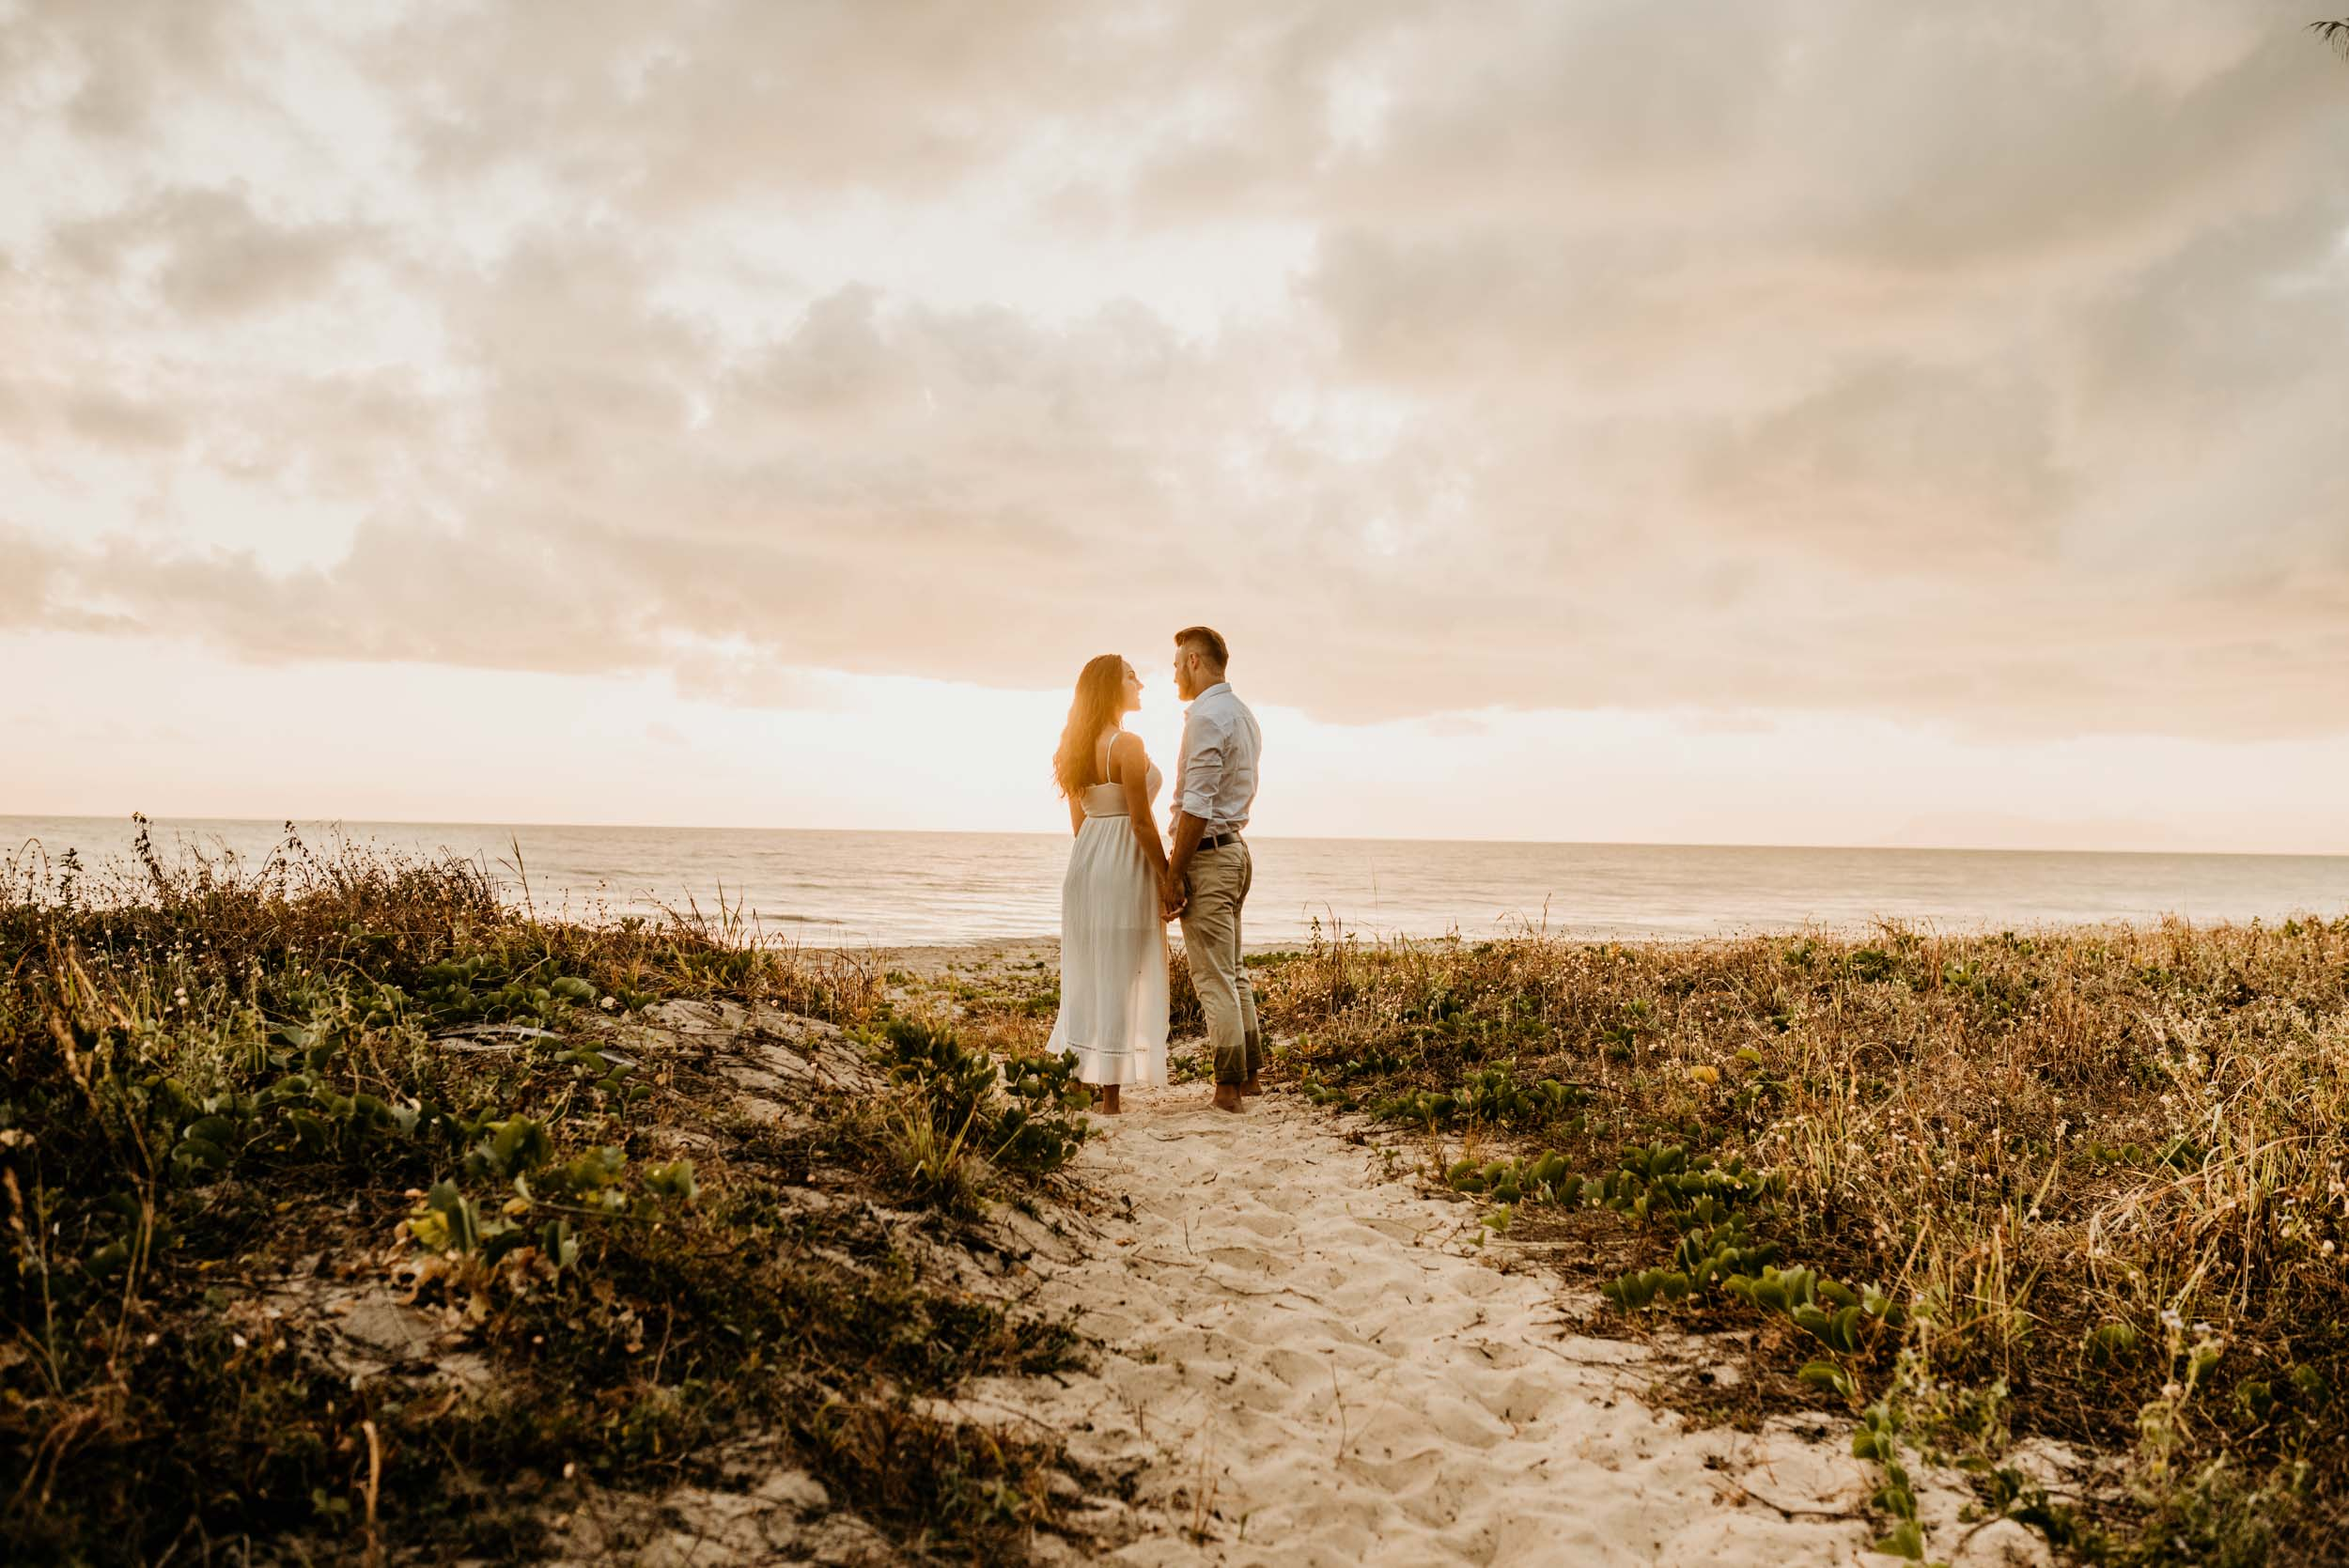 The Raw Photographer - Cairns Wedding Photographer - Engaged Engagement - Beach location - Candid Photography Queensland-25.jpg